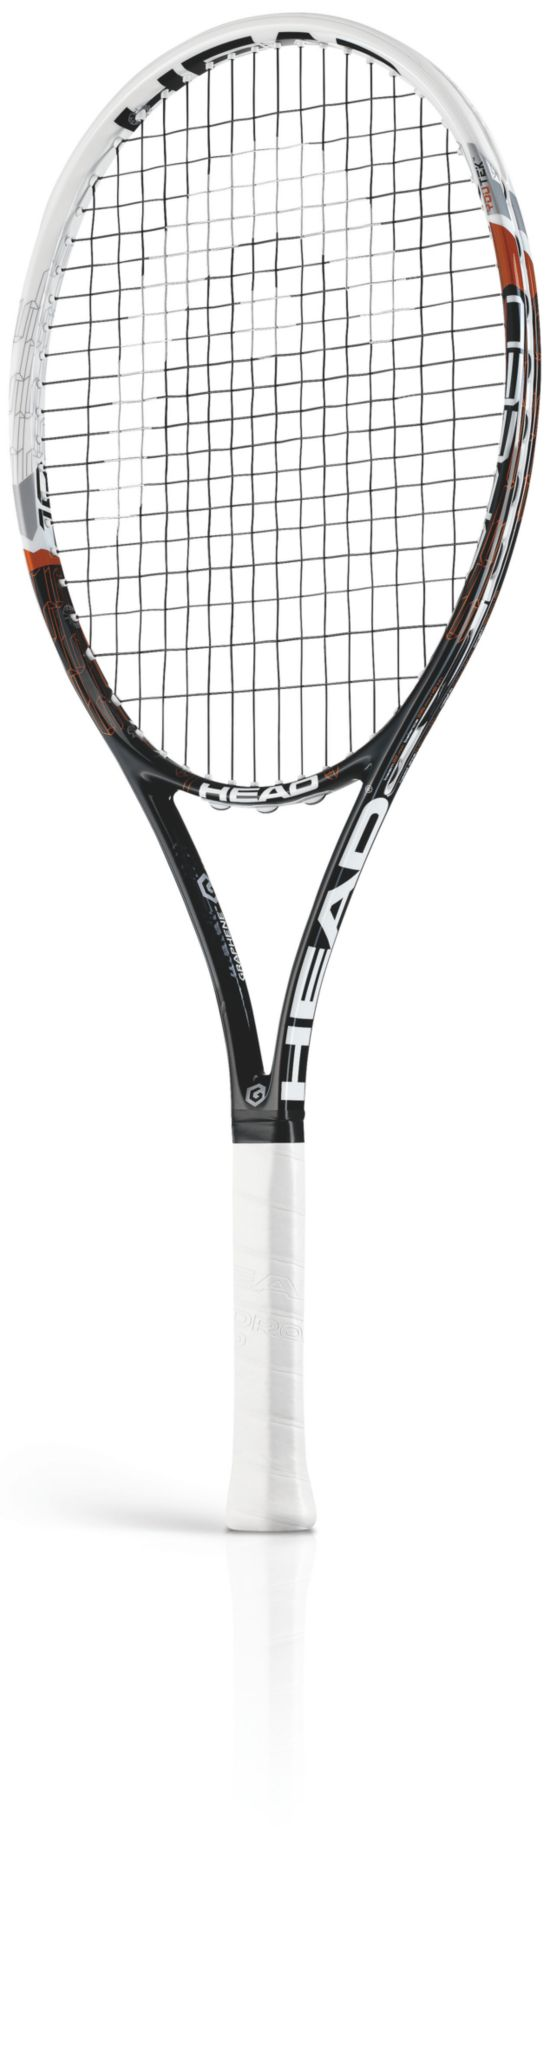 Youtek Graphene Speed Tennisracket Jr